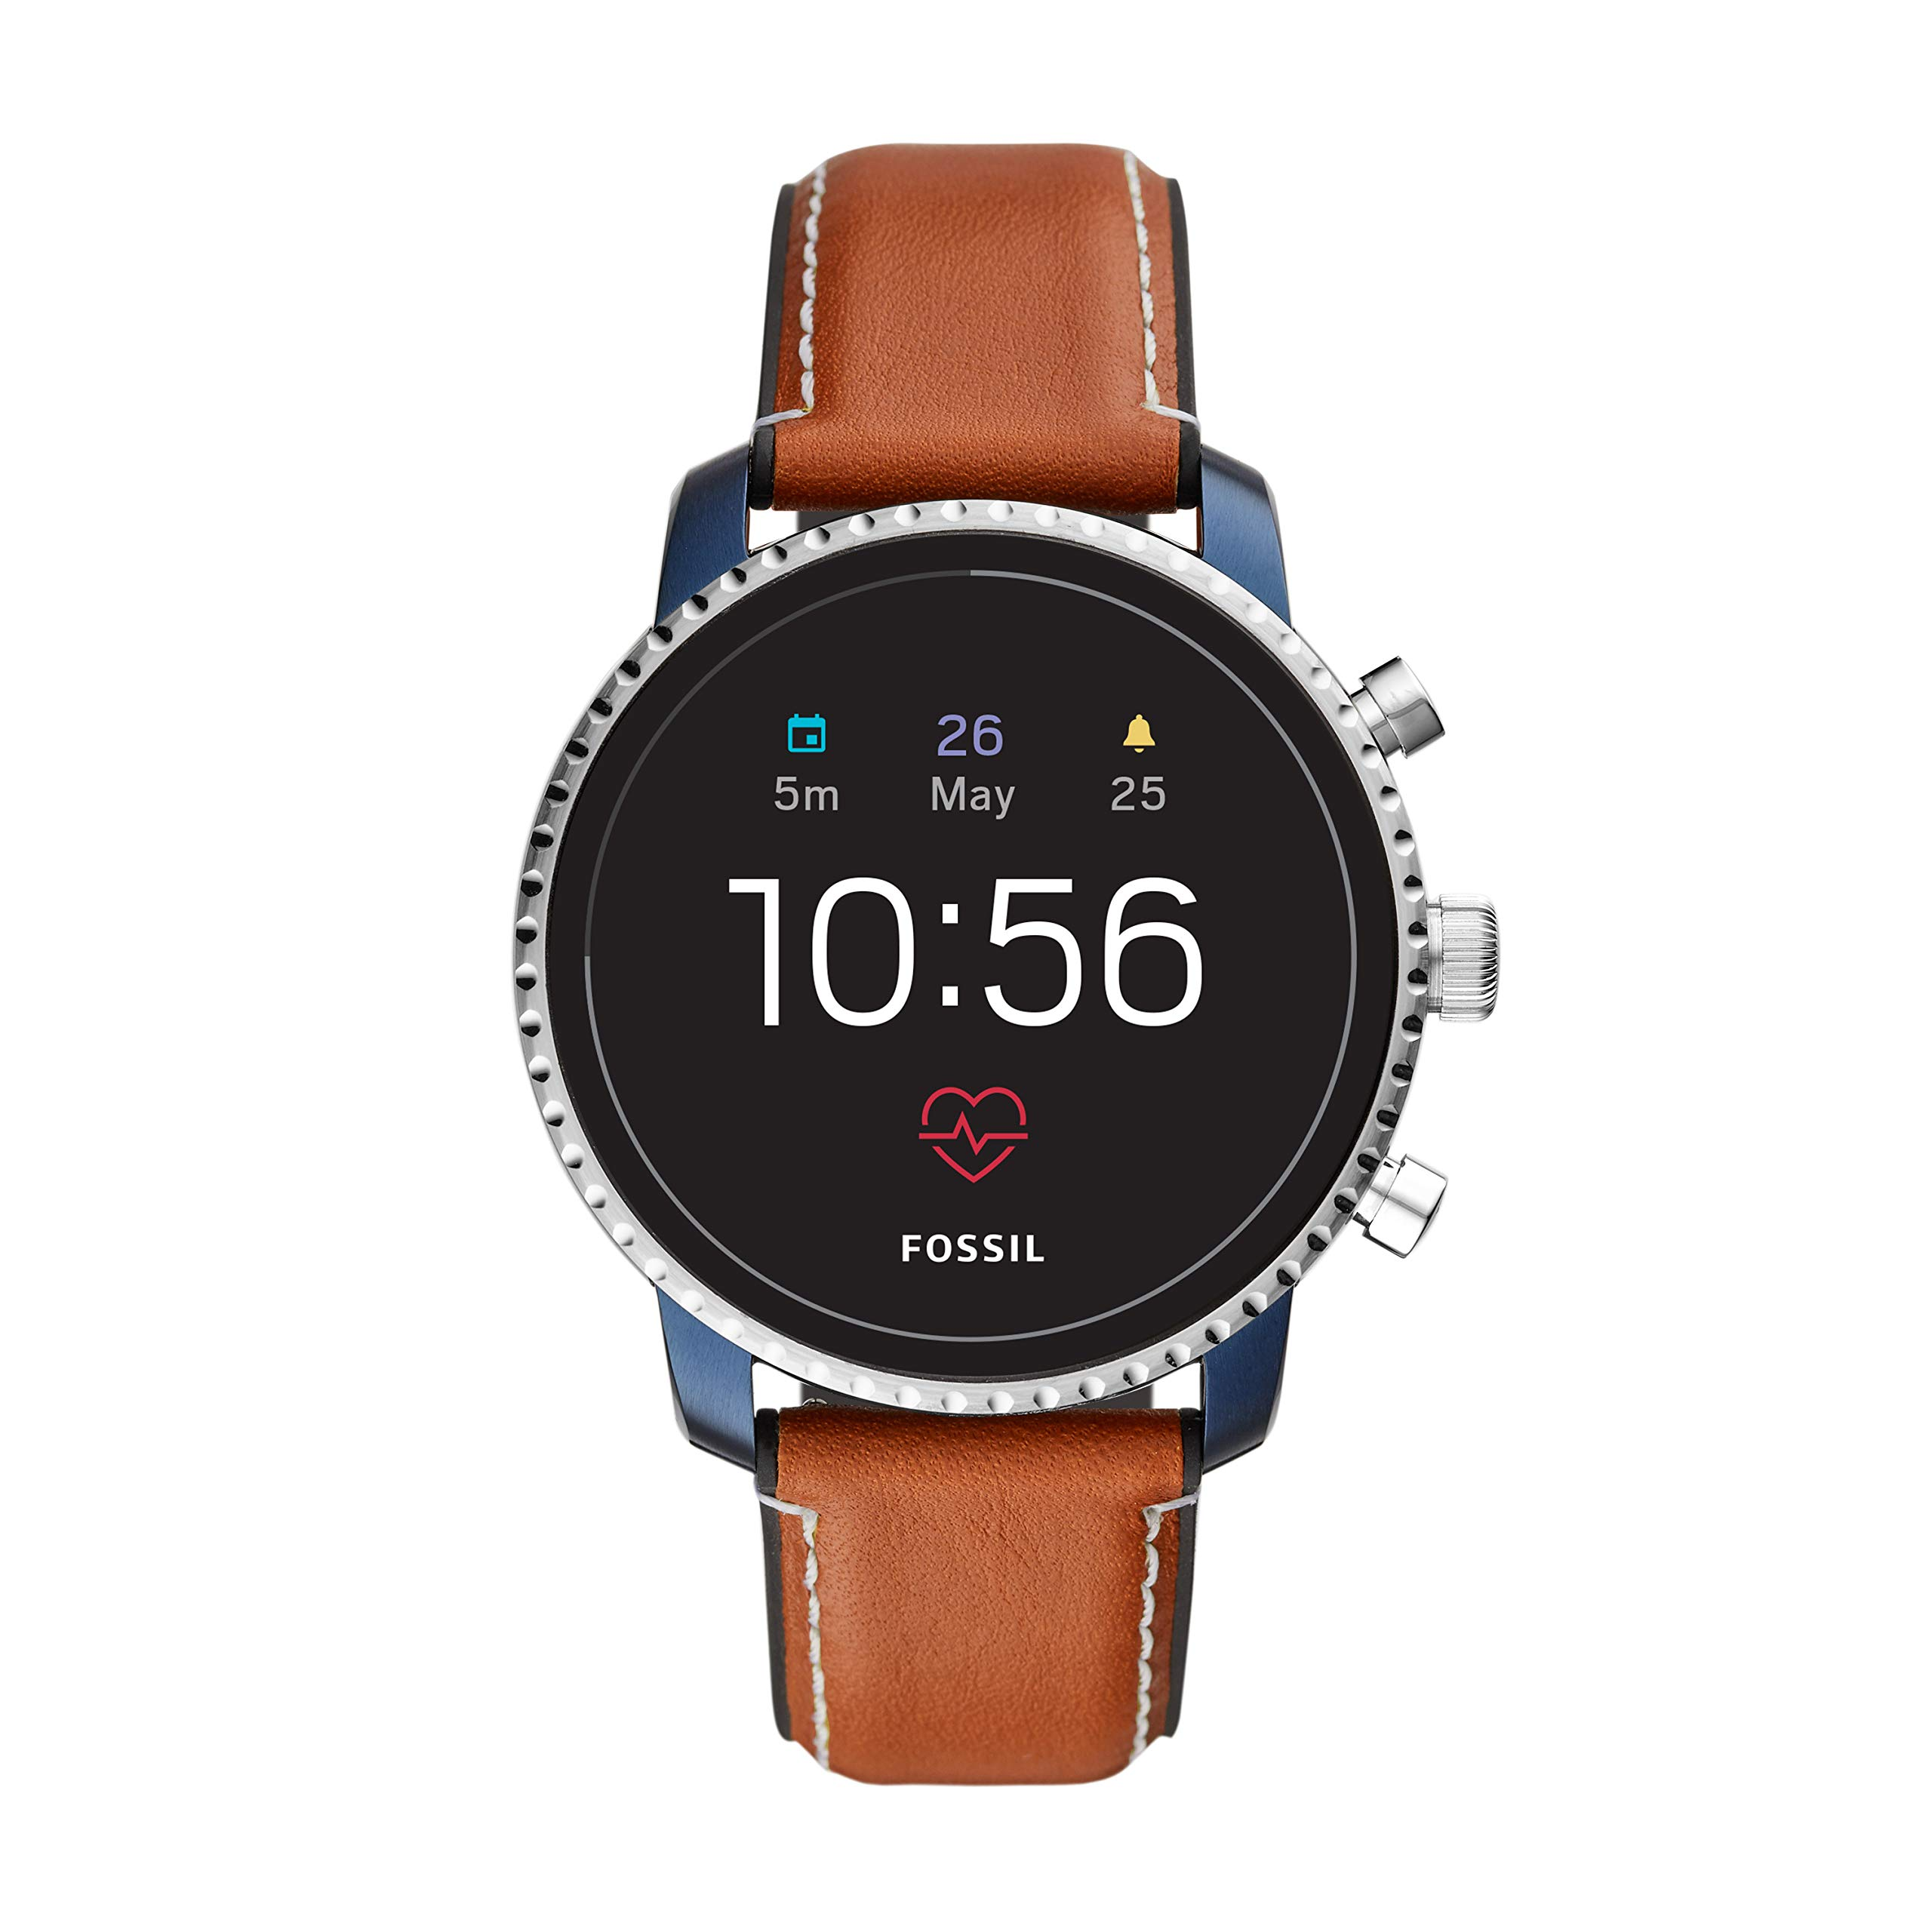 Fossil Touchscreen Smartwatch (Model: FTW4016) by Fossil (Image #1)